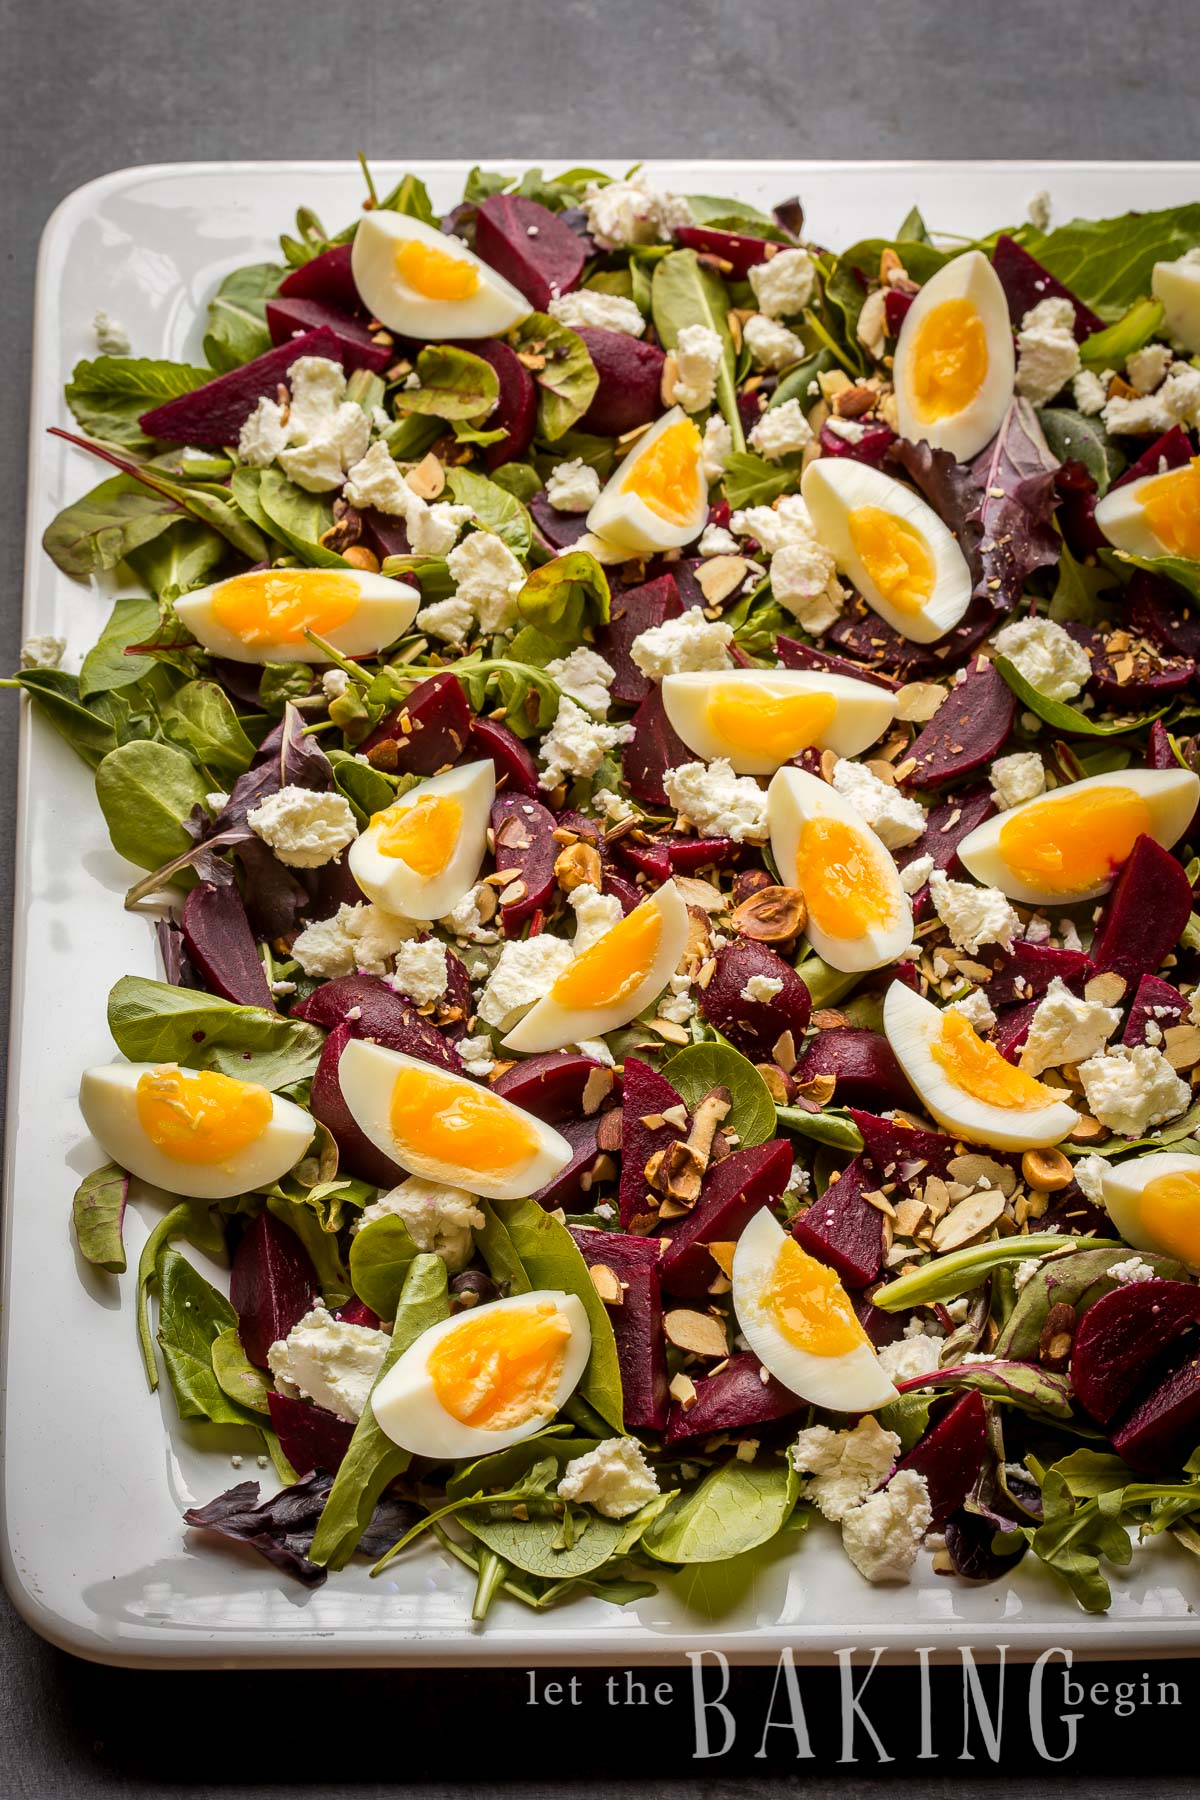 Beet and Goat Cheese Salad with Egg is served on a bed of Spring Mix Salad, then sprinkled with Goat Cheese, Hazelnuts and Egg.